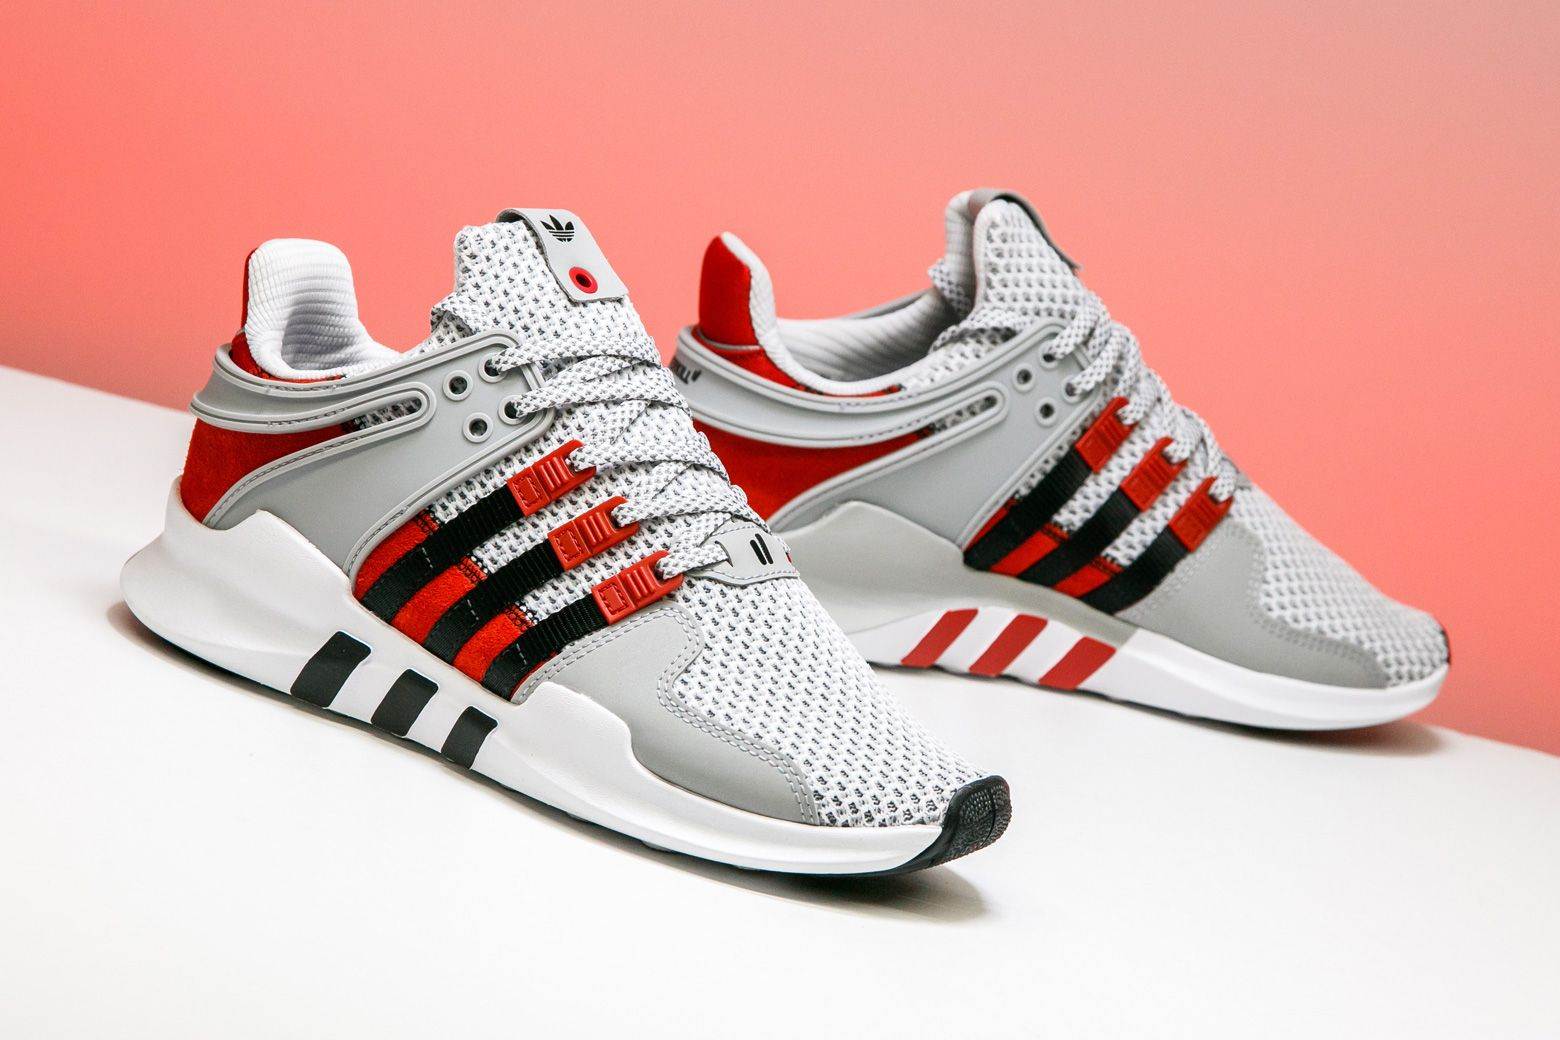 new product 806aa 4fa1d The Overkill x adidas Consortium EQT